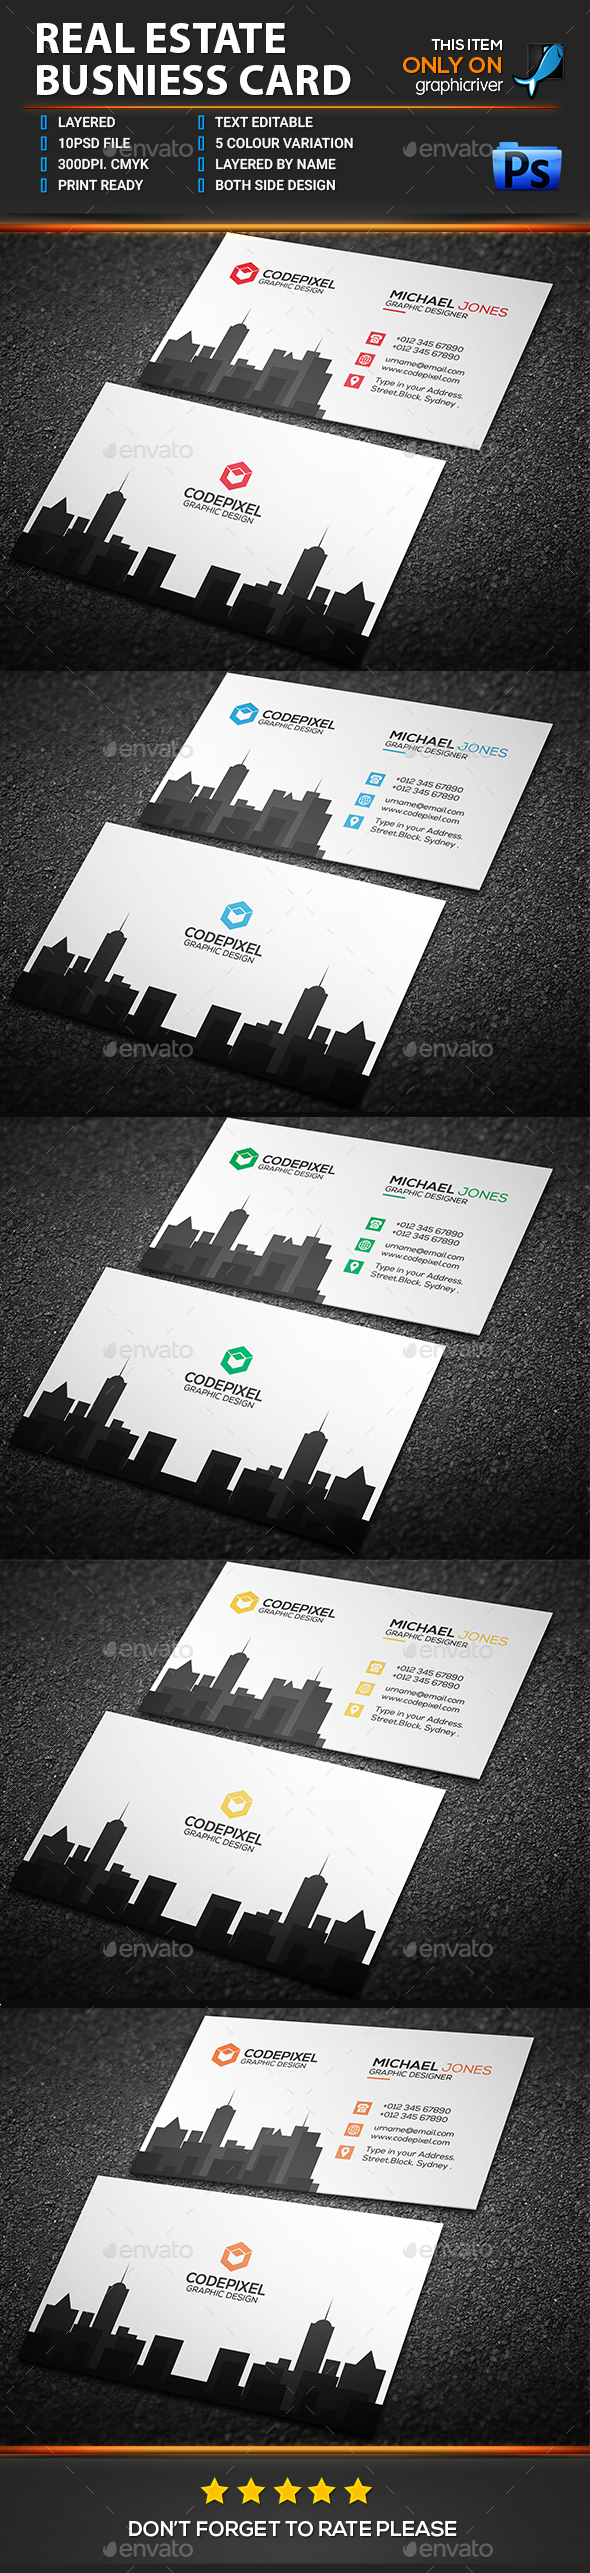 Real estate business card by hazepixel graphicriver real estate business card business cards print templates reheart Choice Image